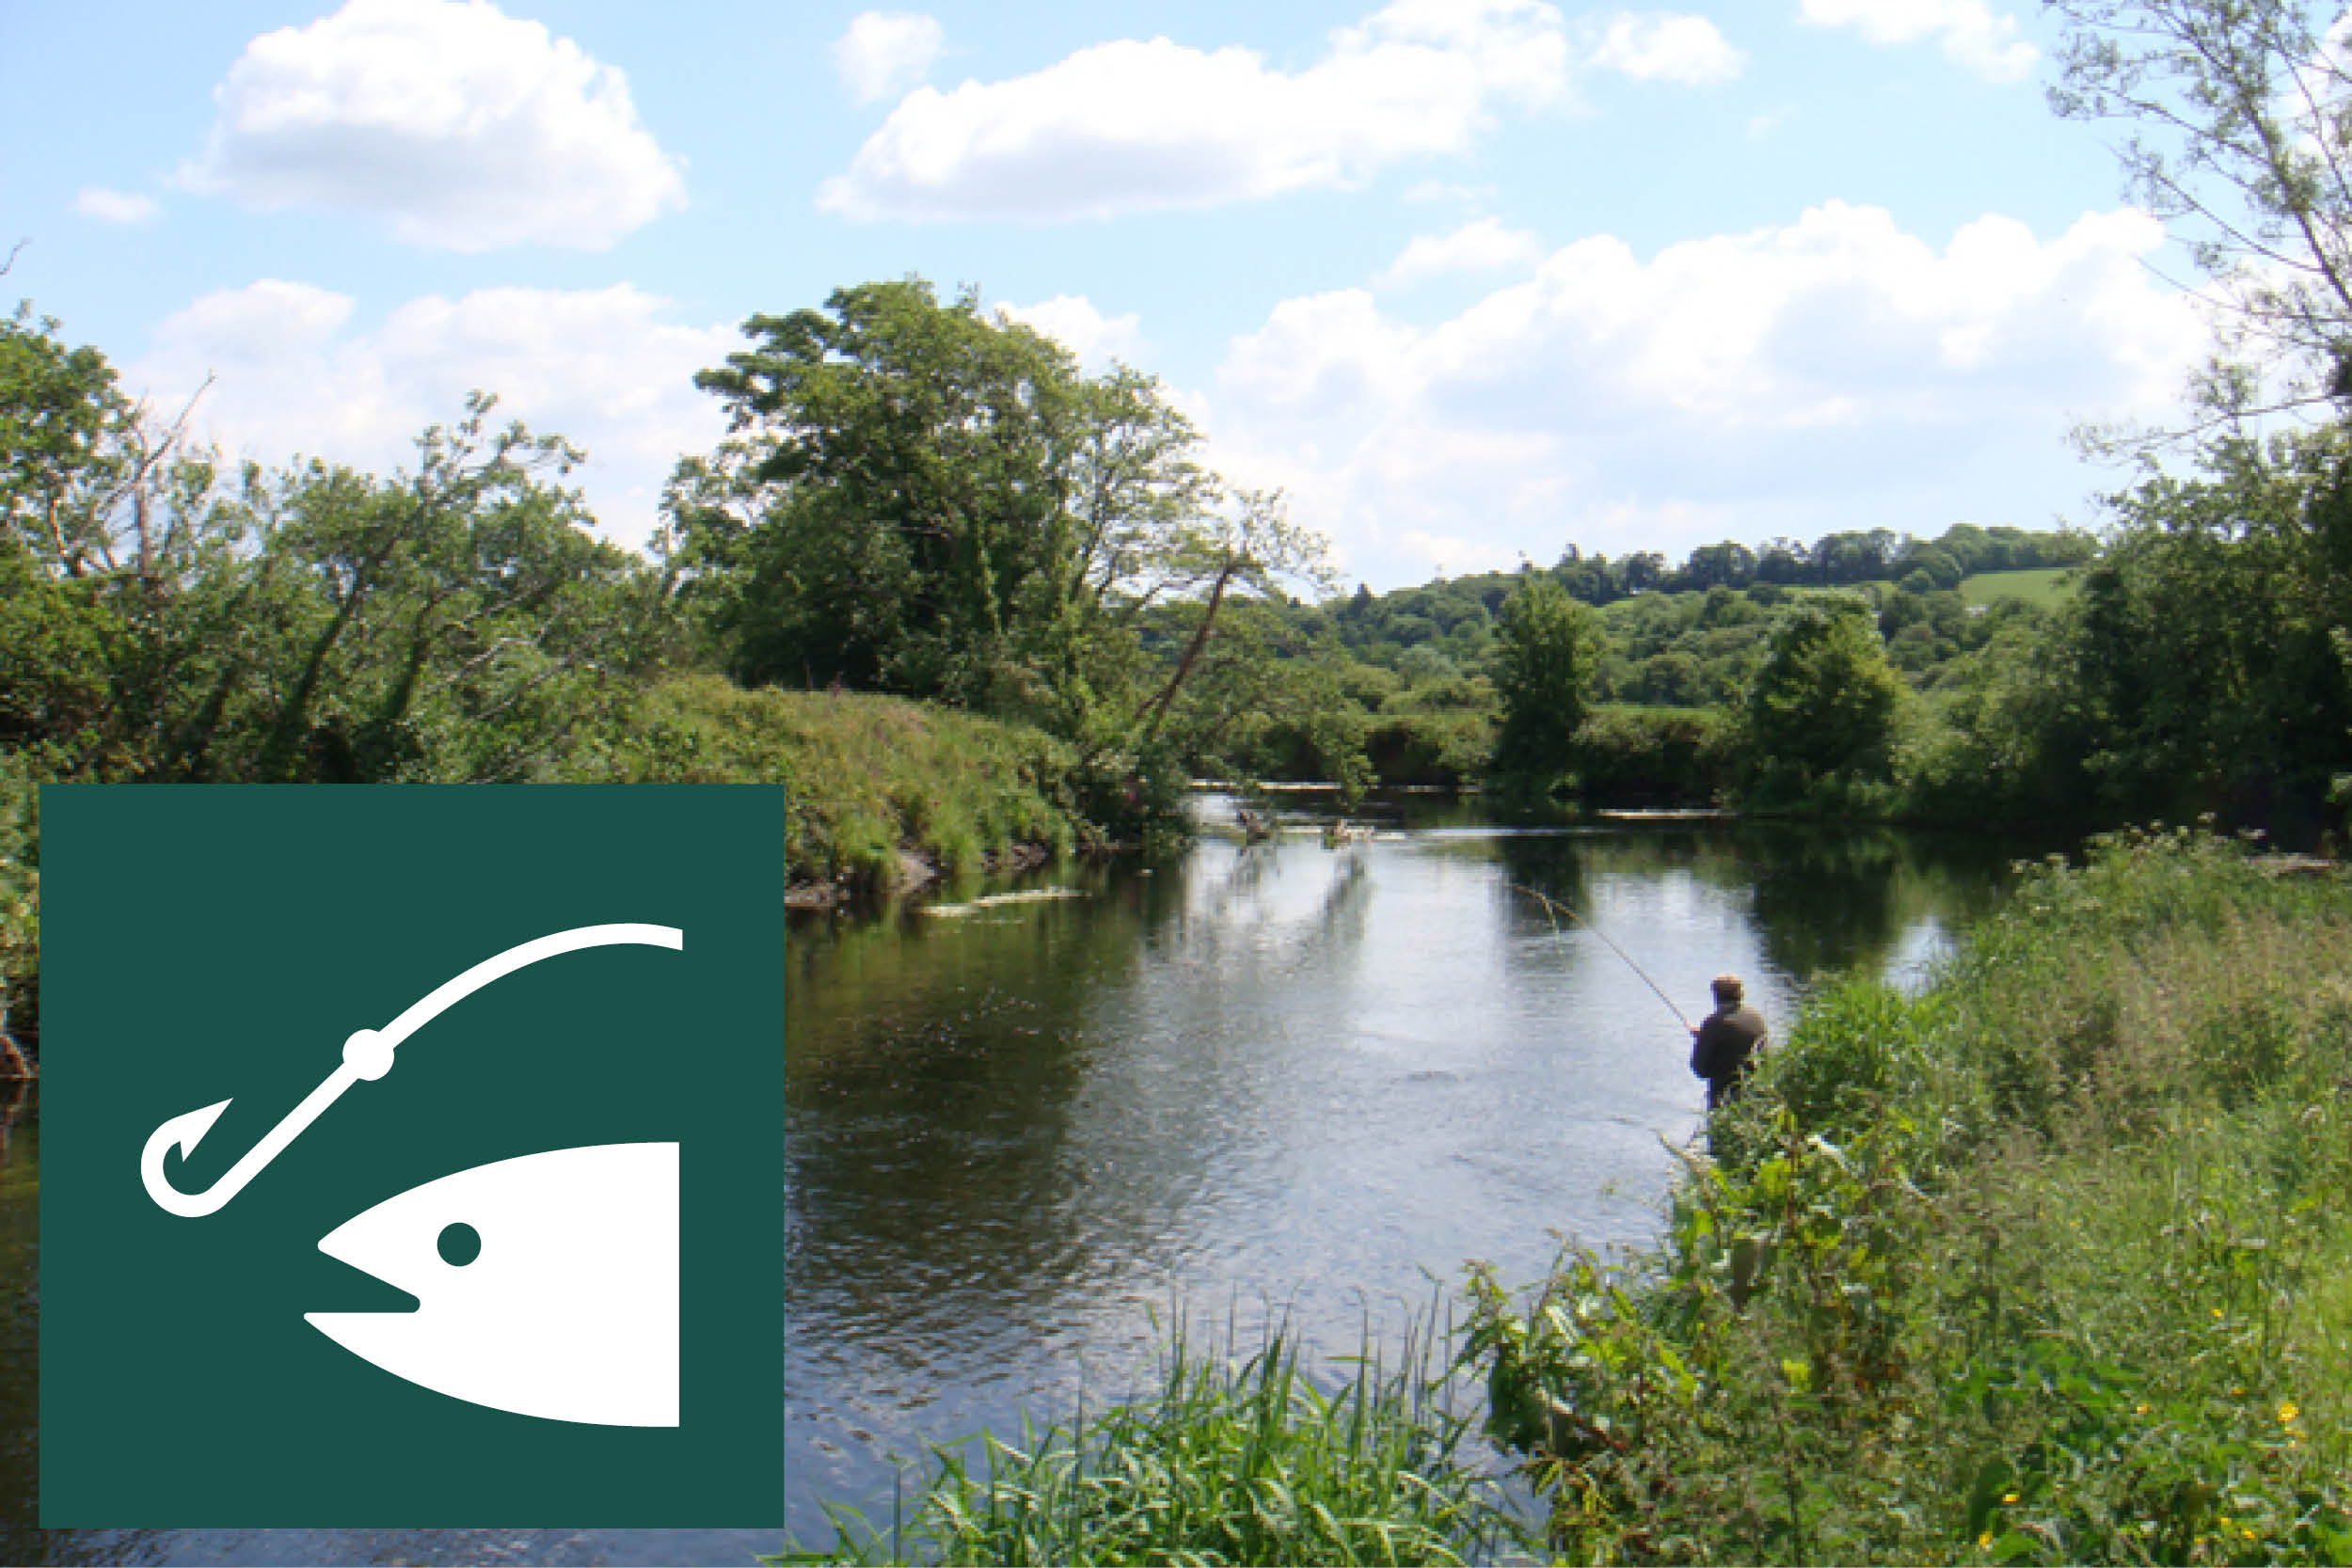 FISHING  There is excellent trout and pike fishing in the private 3 mile stretch of the Colebrooke River which runs through the estate.  There is also private trout fishing in hill loughs within 10 minutes of the cottages.  Equipment and licensing  Fishing equipment, 15 minute drive away  http://www.emersonslisnaskea.com/   Information on DARD fisheries in Fermanagh  http://www.nidirect.gov.uk/fisheries-in-county-fermanagh